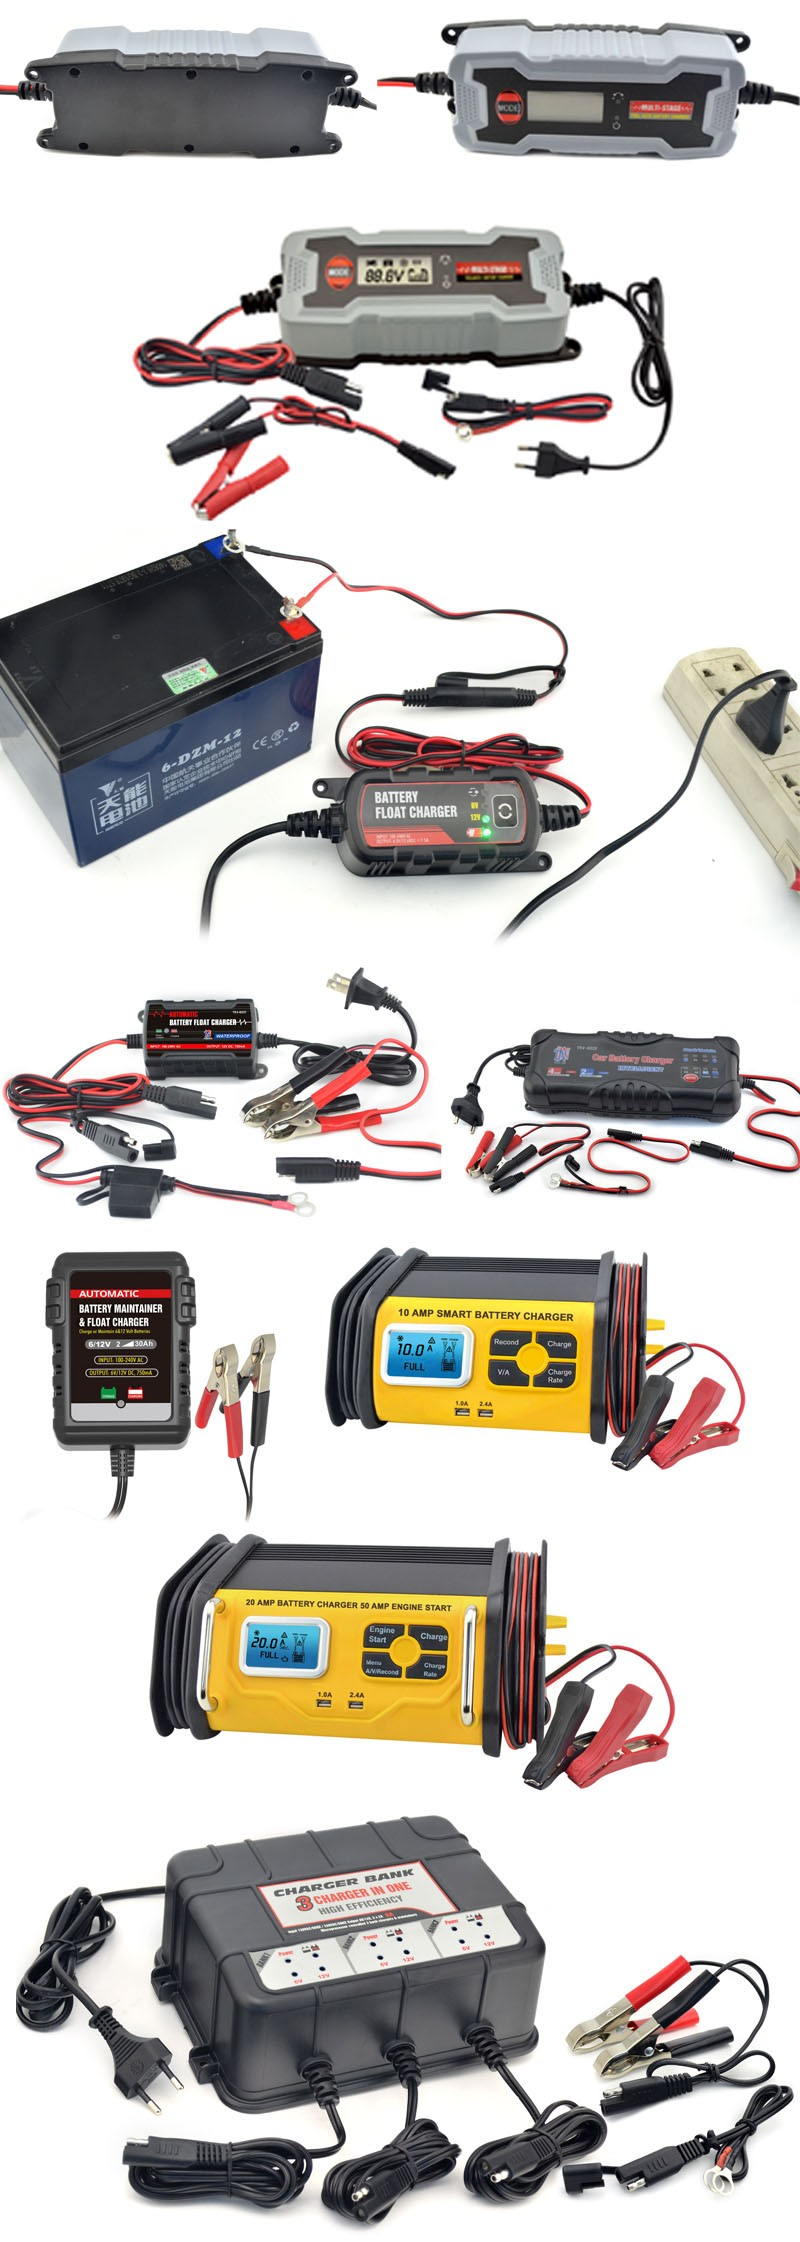 6V&12V, 0.75A Smart Battery Charger maintainer